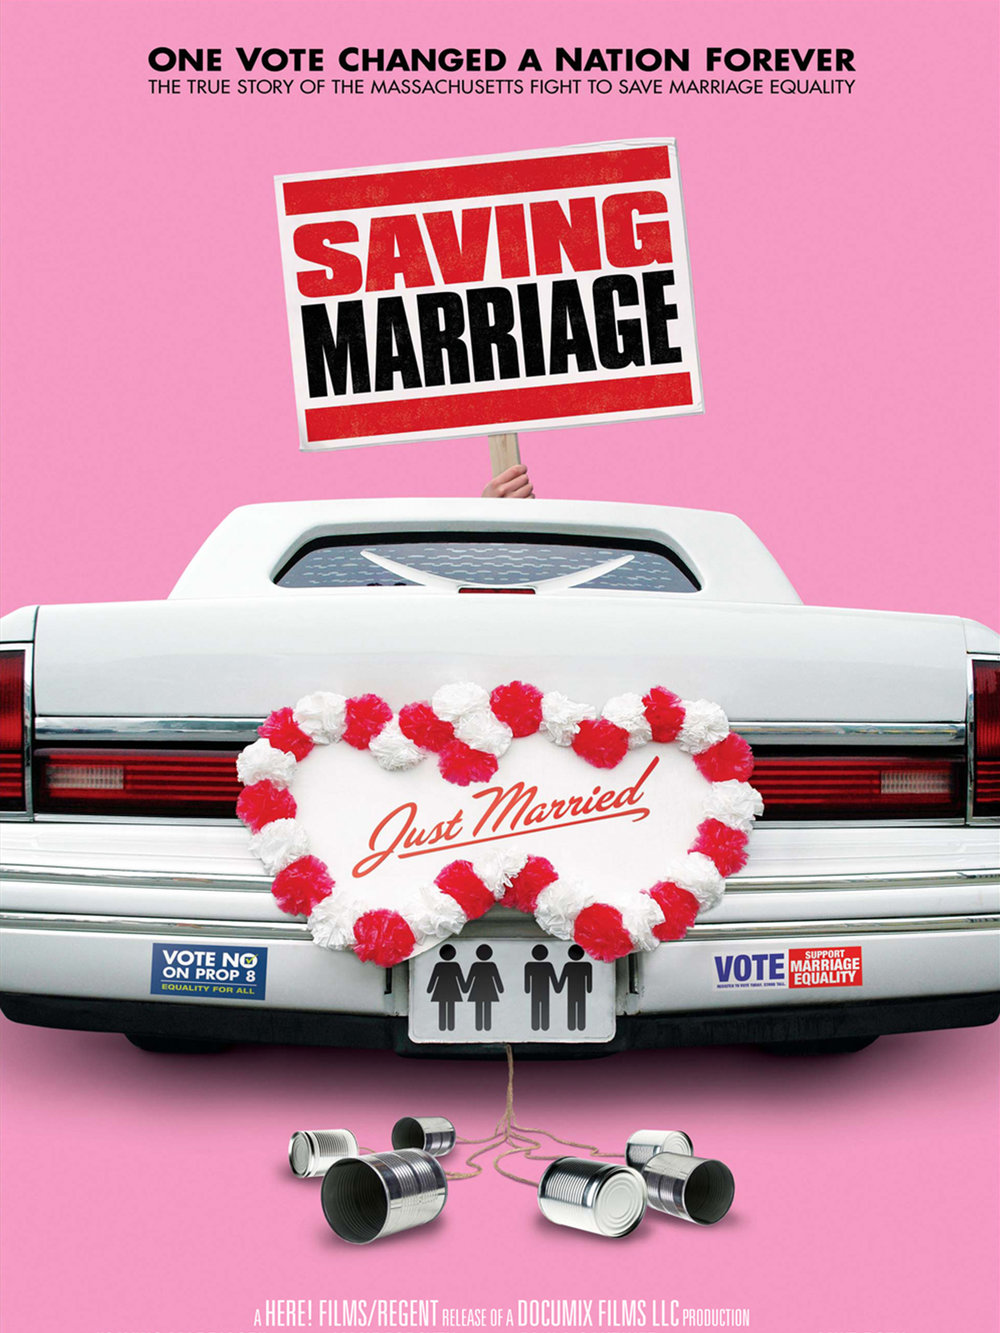 Here-SavingMarriage-Full-Image-en-US.jpg